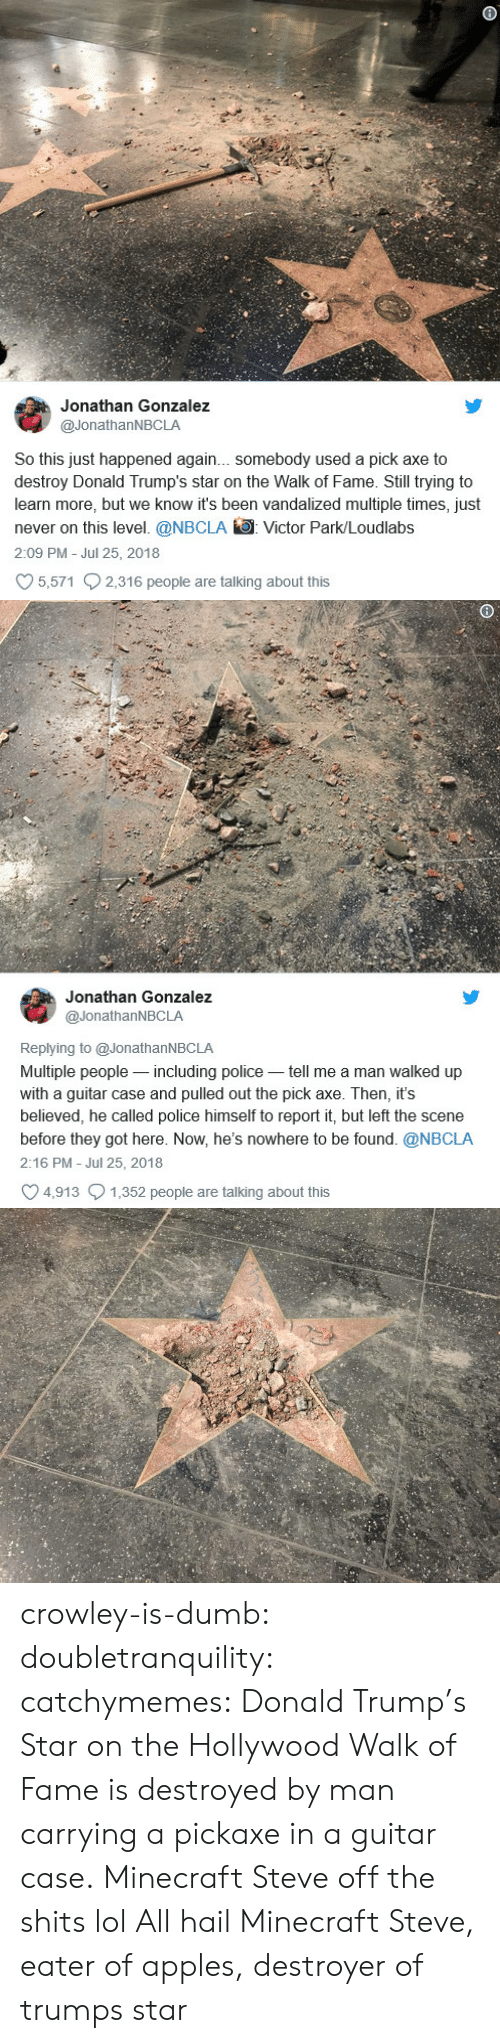 Pulled Out: Jonathan Gonzalez  @JonathanNBCLA  So this just happened again... somebody used a pick axe to  destroy Donald Trump's star on the Walk of Fame. Still trying to  learn more, but we know it's been vandalized multiple times, just  never on this level. @NBCLA Victor Park/Loudlabs  2:09 PM Jul 25, 2018  5,571 2,316 people are talking about this   Jonathan Gonzalez  @JonathanNBCLA  Replying to @JonathanNBCLA  Multiple people-including police tell me a man walked up  with a guitar case and pulled out the pick axe. Then, it's  believed, he called police himself to report it, but left the scene  before they got here. Now, he's nowhere to be found. @NBCLA  2:16 PM - Jul 25, 2018  4,913 1,352 people are talking about this crowley-is-dumb:  doubletranquility: catchymemes:  Donald Trump's Star on the Hollywood Walk of Fame is destroyed by man carrying a pickaxe in a guitar case.  Minecraft Steve off the shits lol   All hail Minecraft Steve, eater of apples, destroyer of trumps star